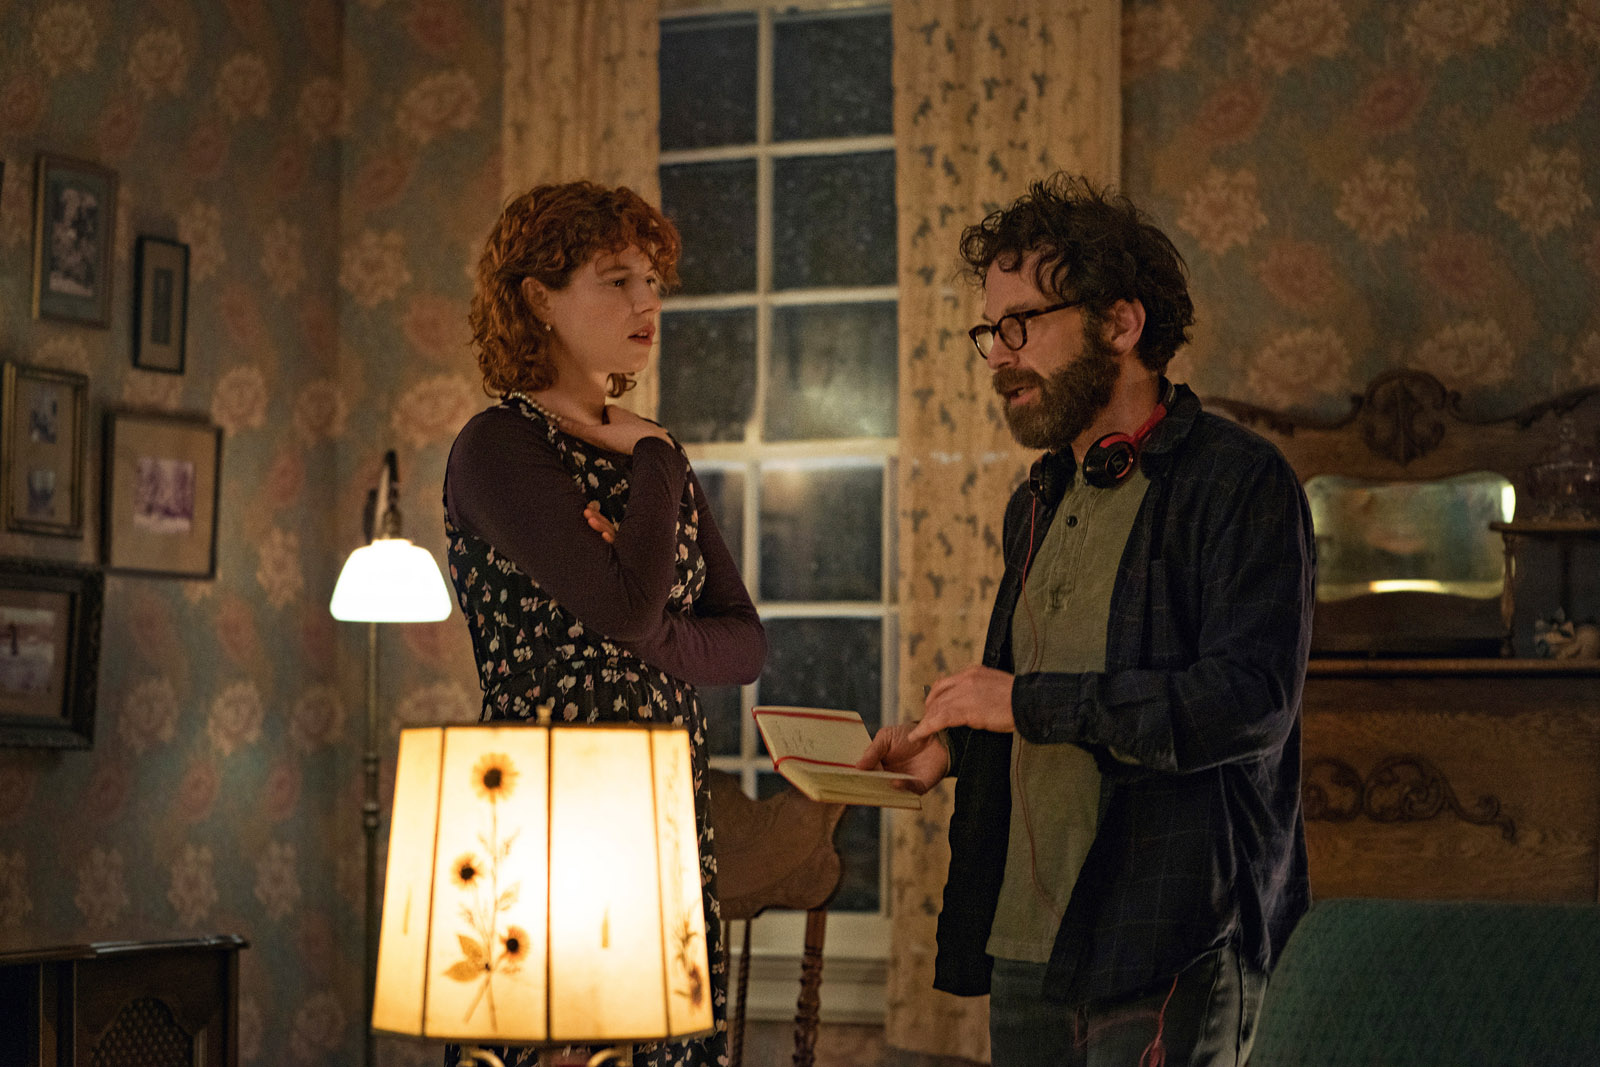 Charlie Kaufman gives direction to Jessie Buckley